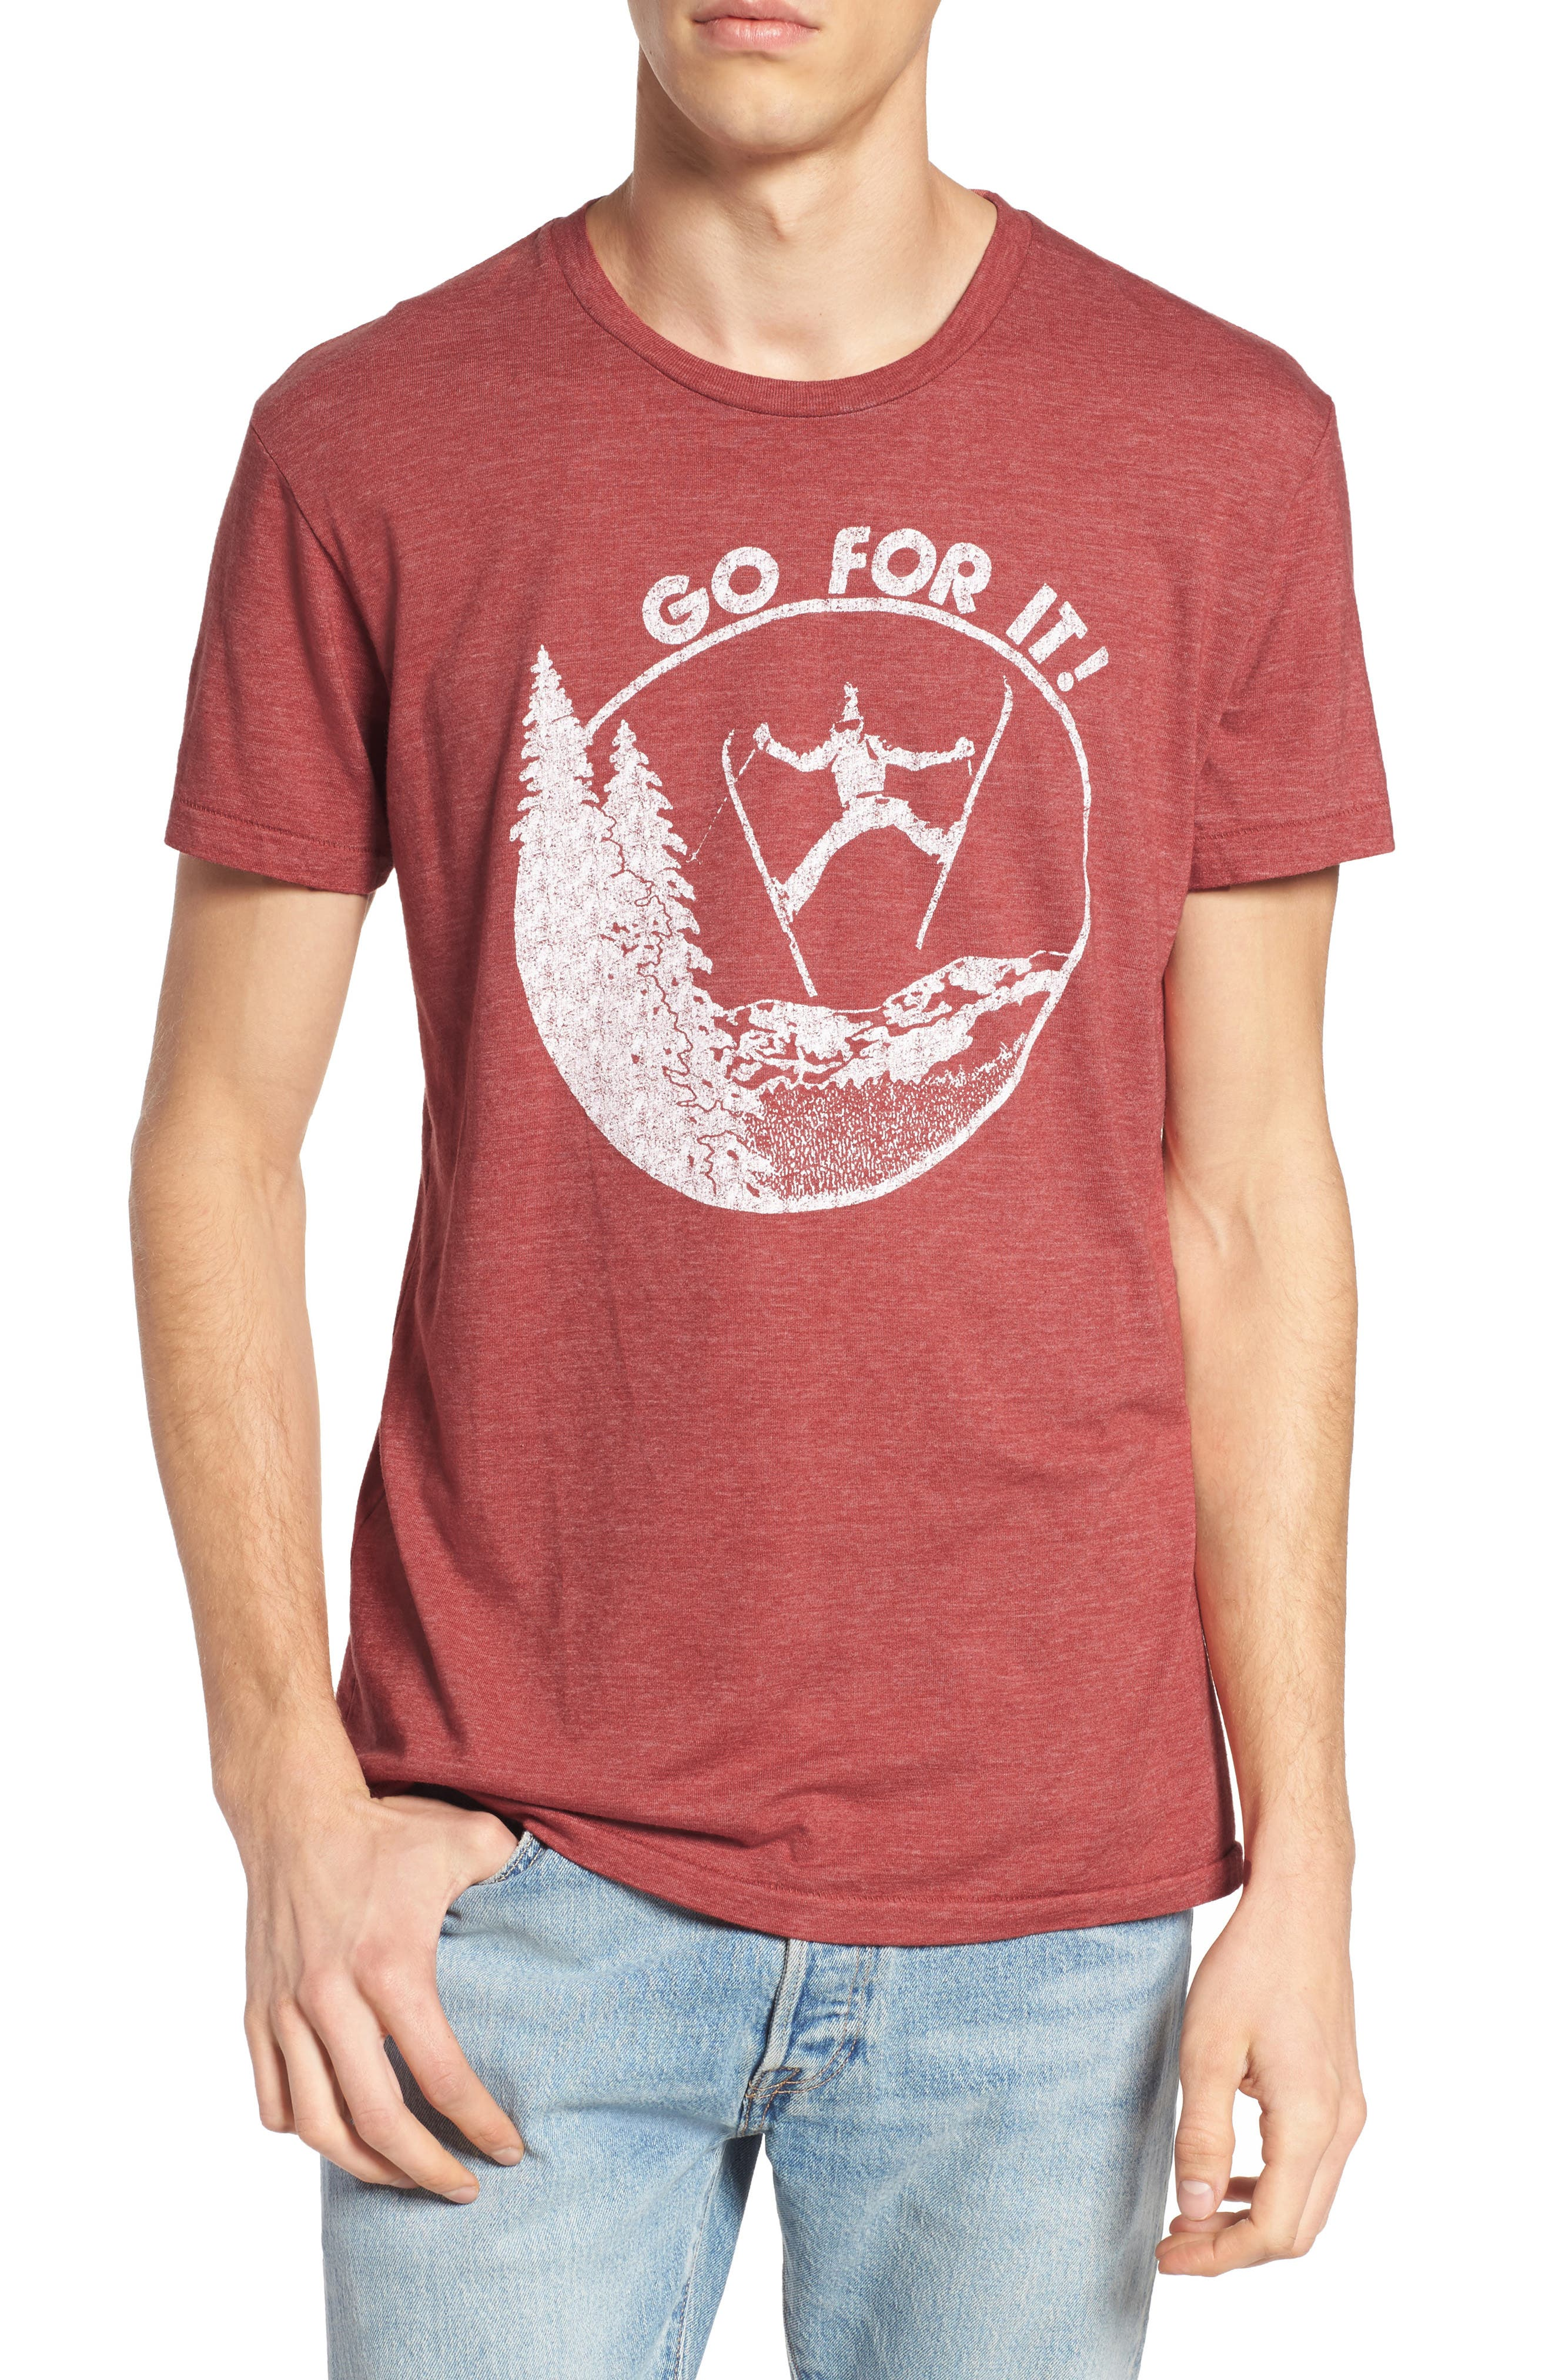 Alternate Image 1 Selected - Sol Angeles Go for It Graphic T-Shirt